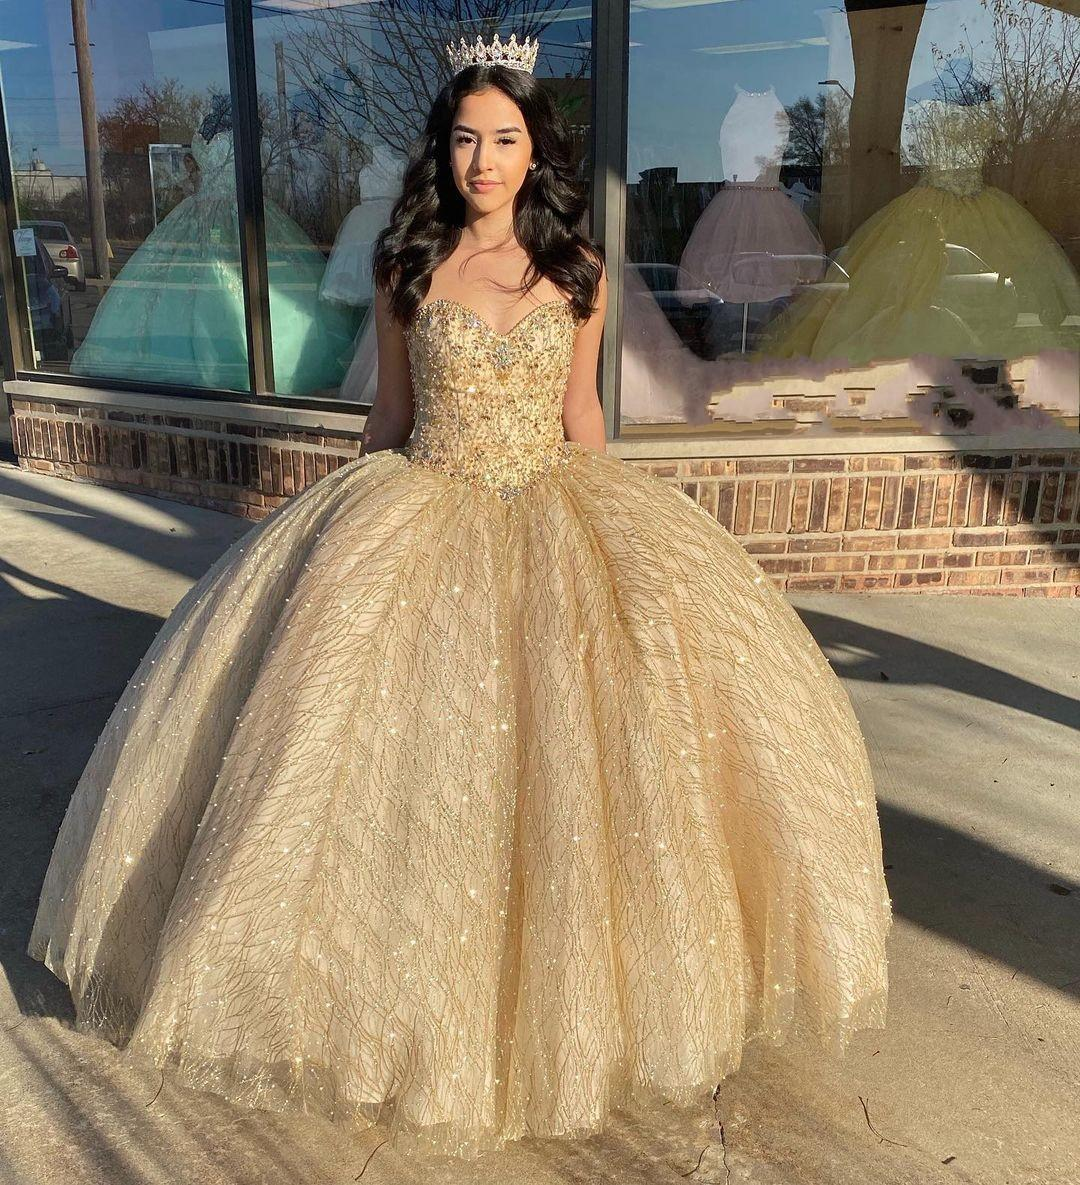 2021 Sparkly Gold Sequined Tulle Quinceanera Prom Dresses Sweetheart Pearls Rhinestones Corset Back Charro Mexican Ball Gown Dress